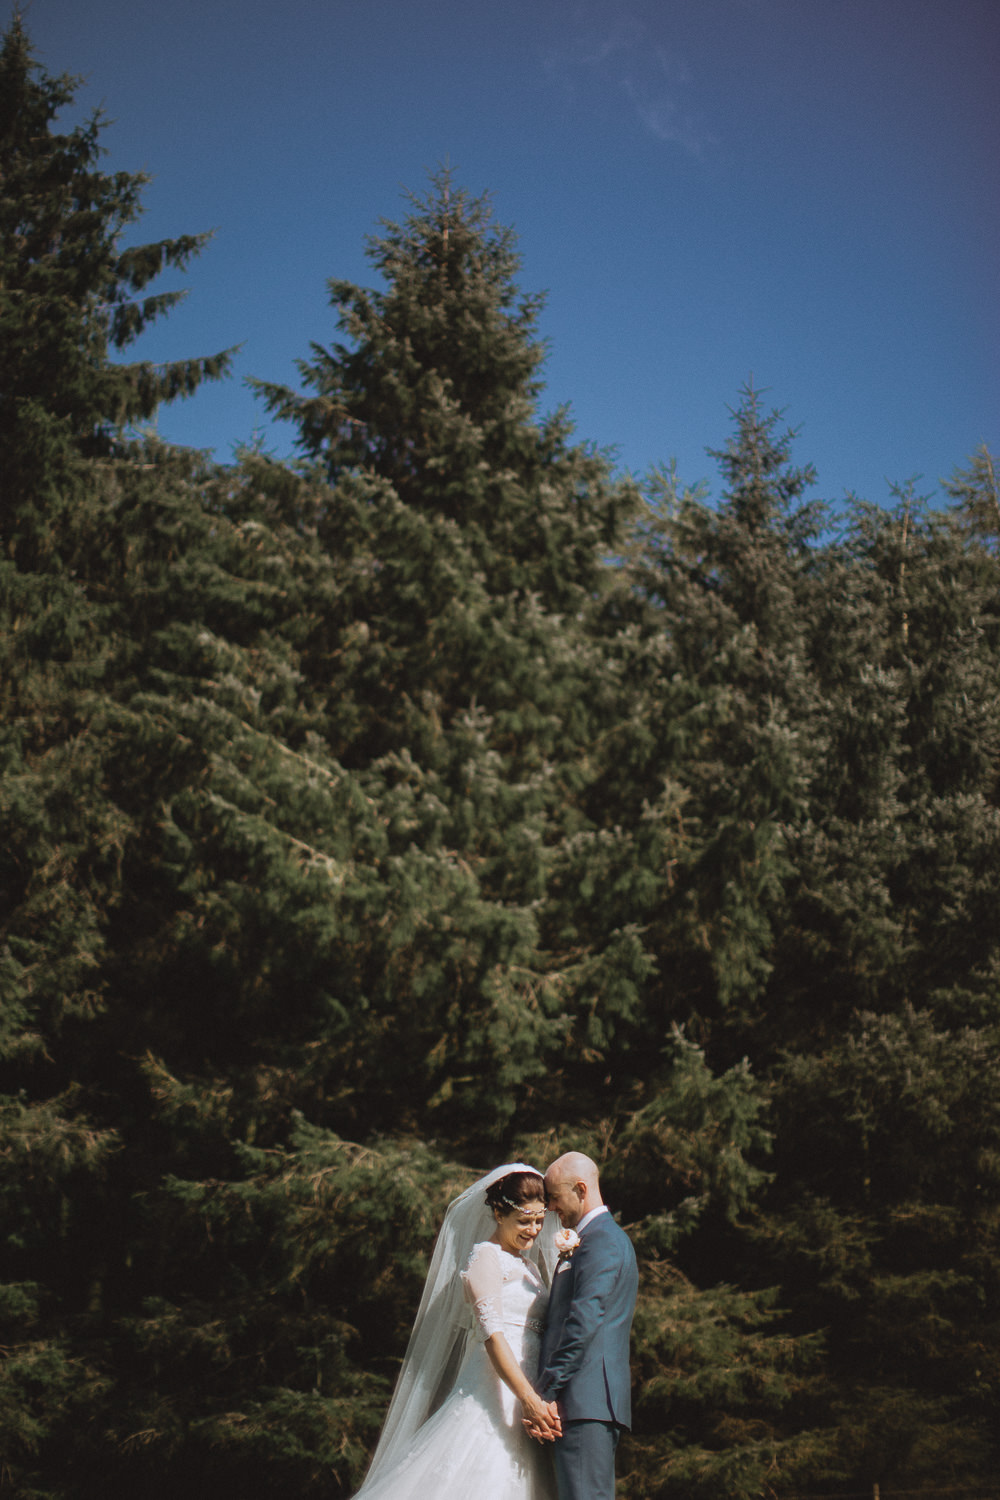 Scout Hut Wedding from Fox & Bear Photography - bride and groom in an embrace in front of a forest